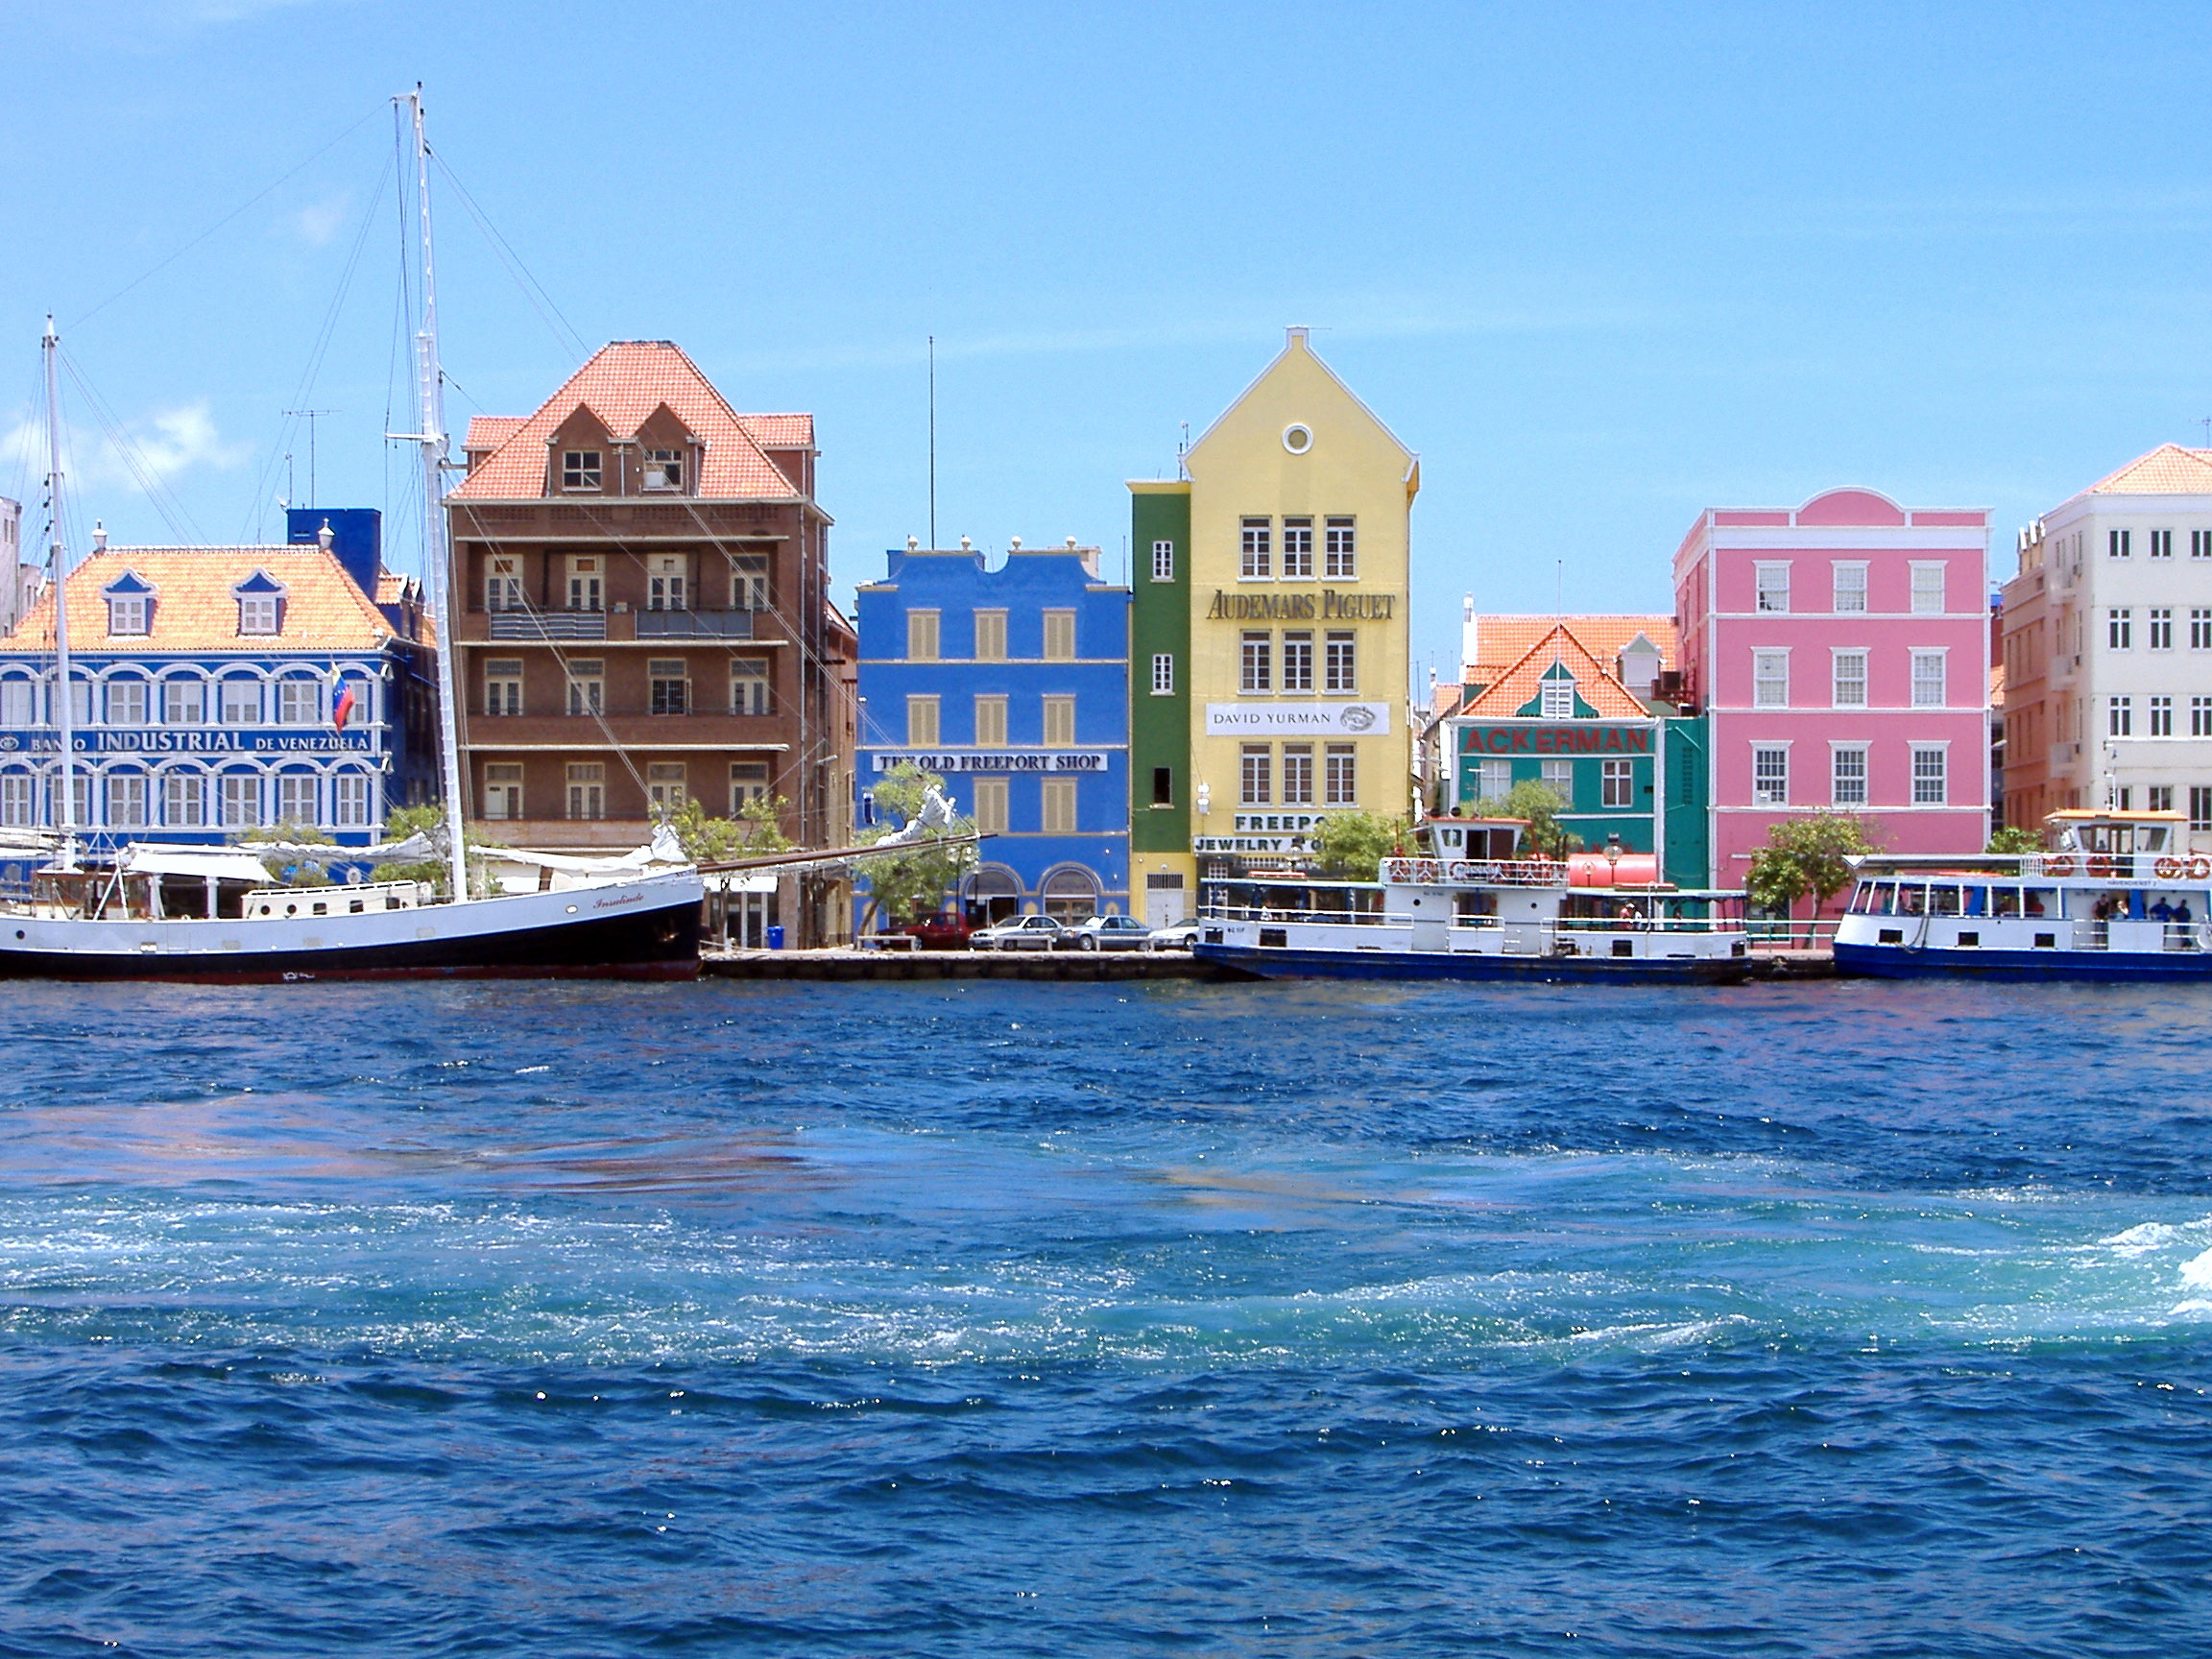 Willemstad's harbour - Image: Mtmelendez CC BY-SA 3.0